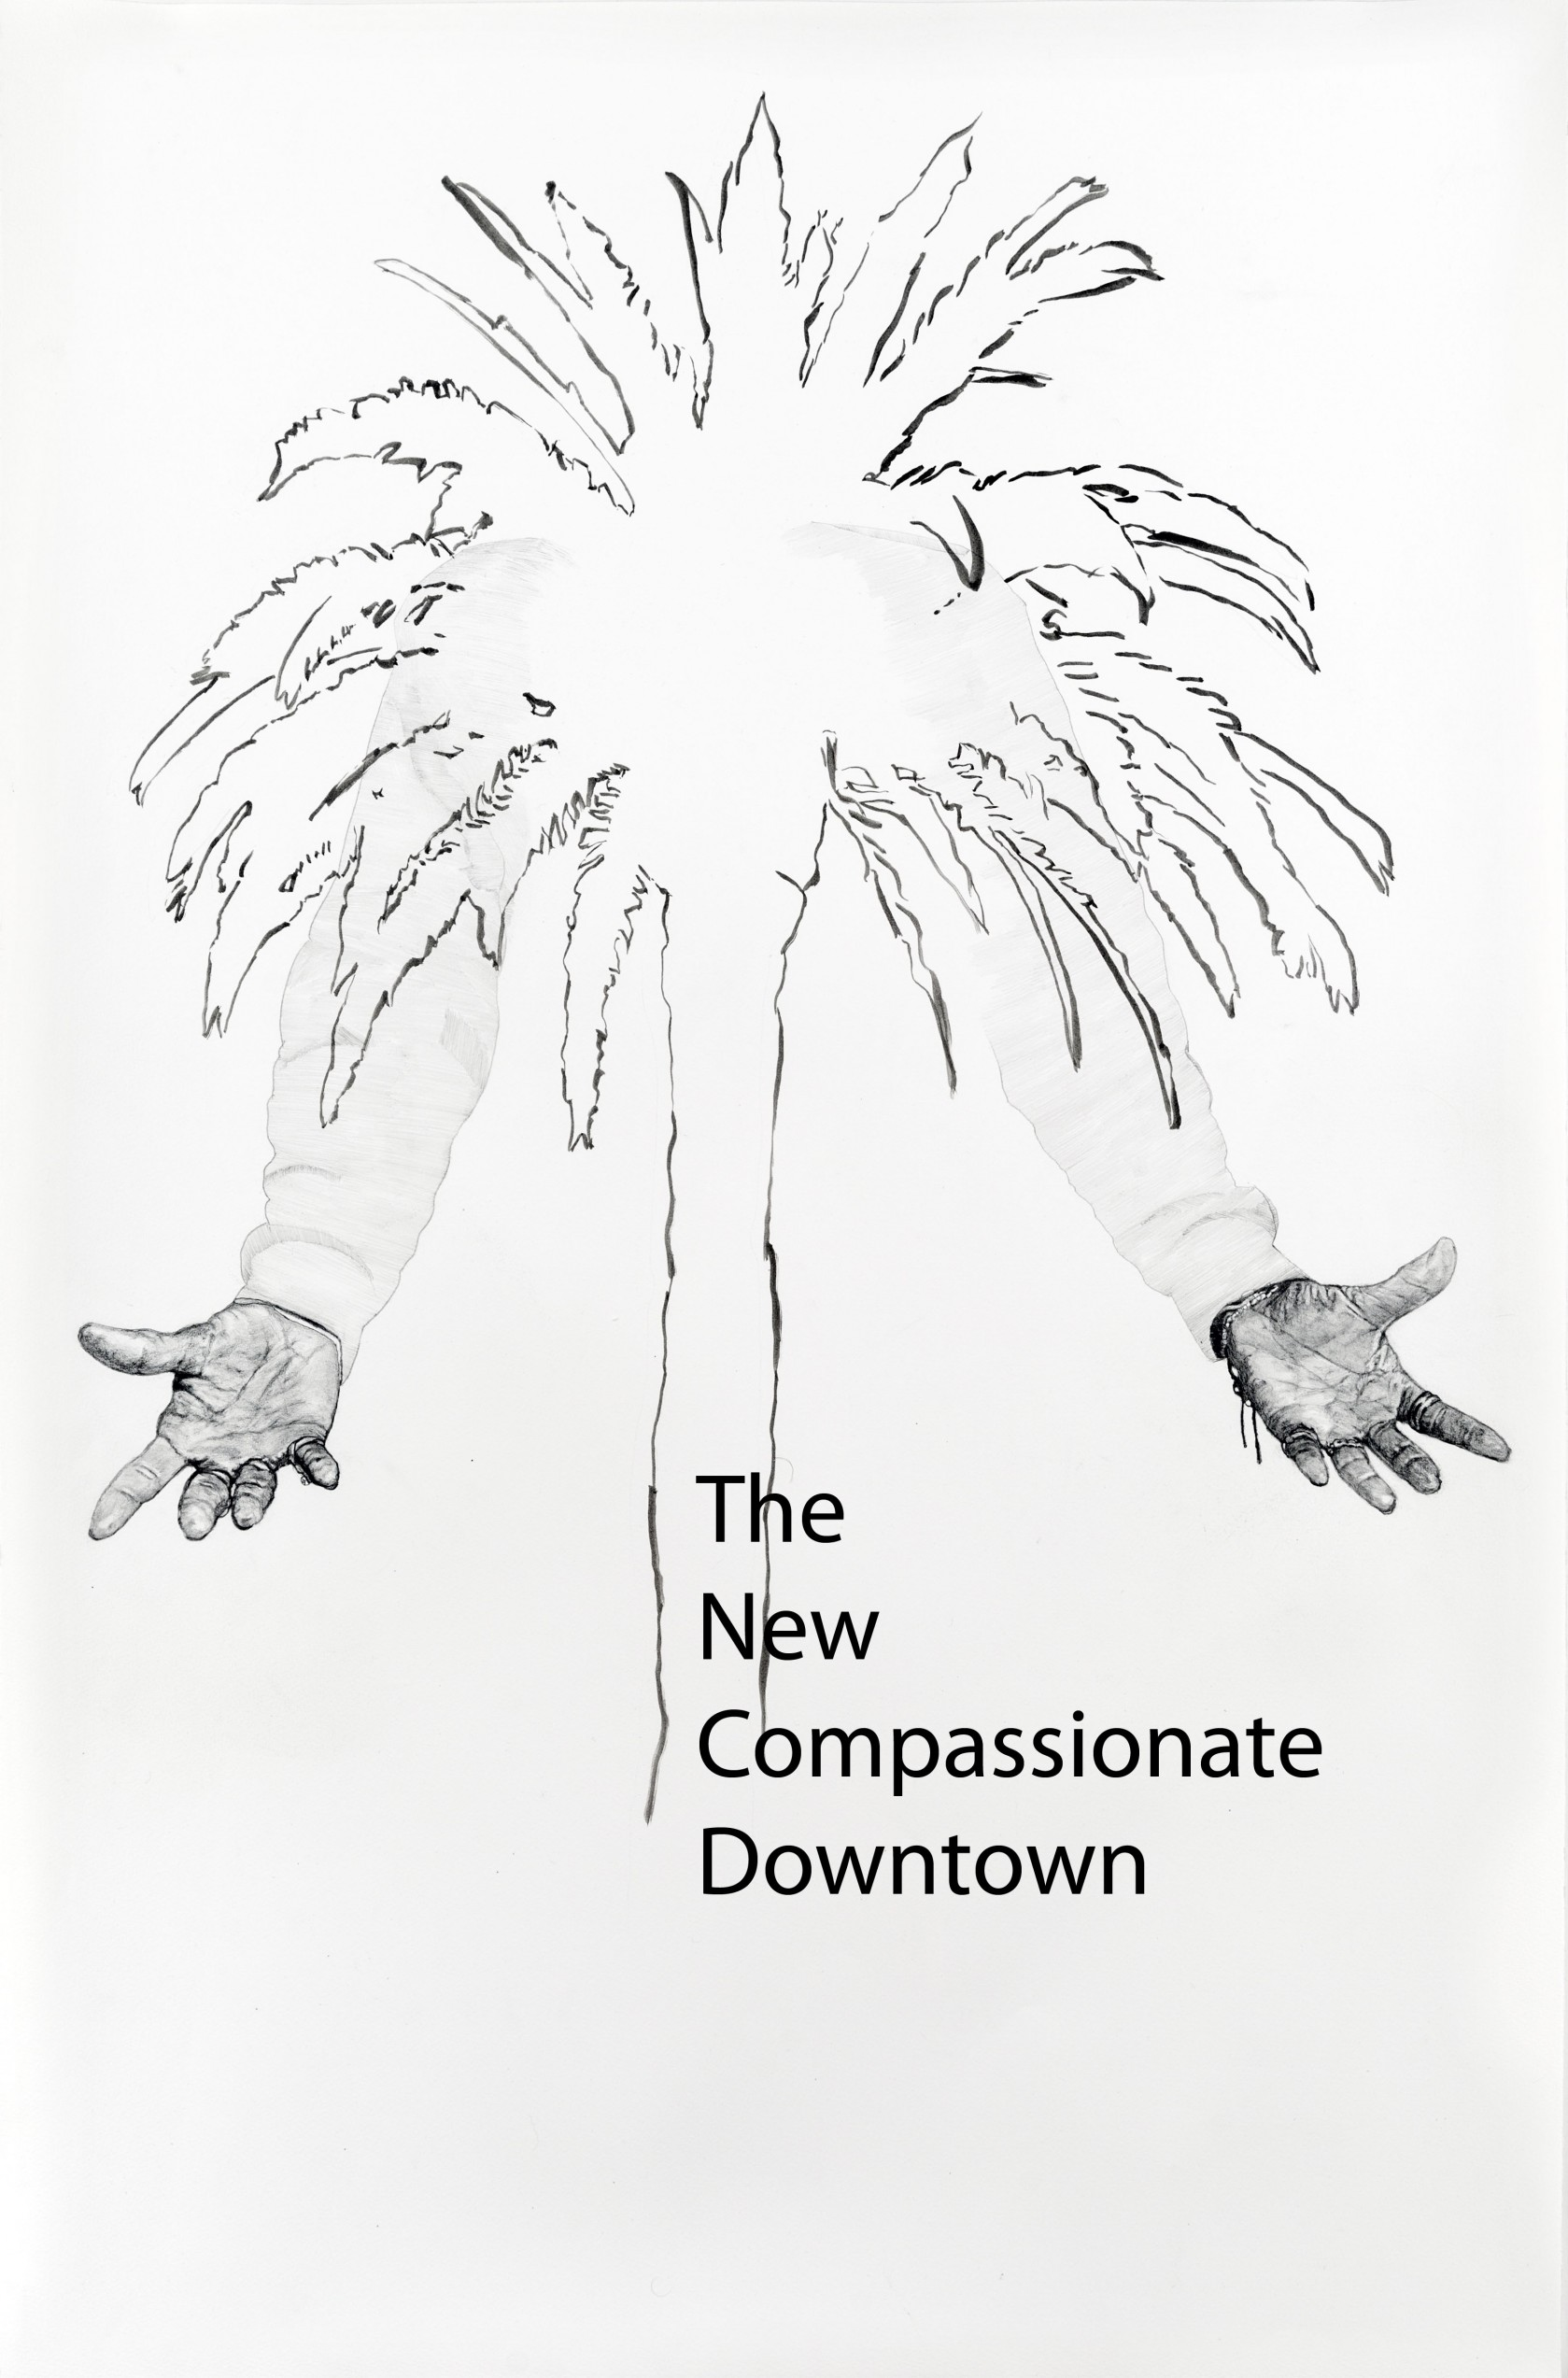 Creating the Compassionate City: Artwork by Robby Herbst